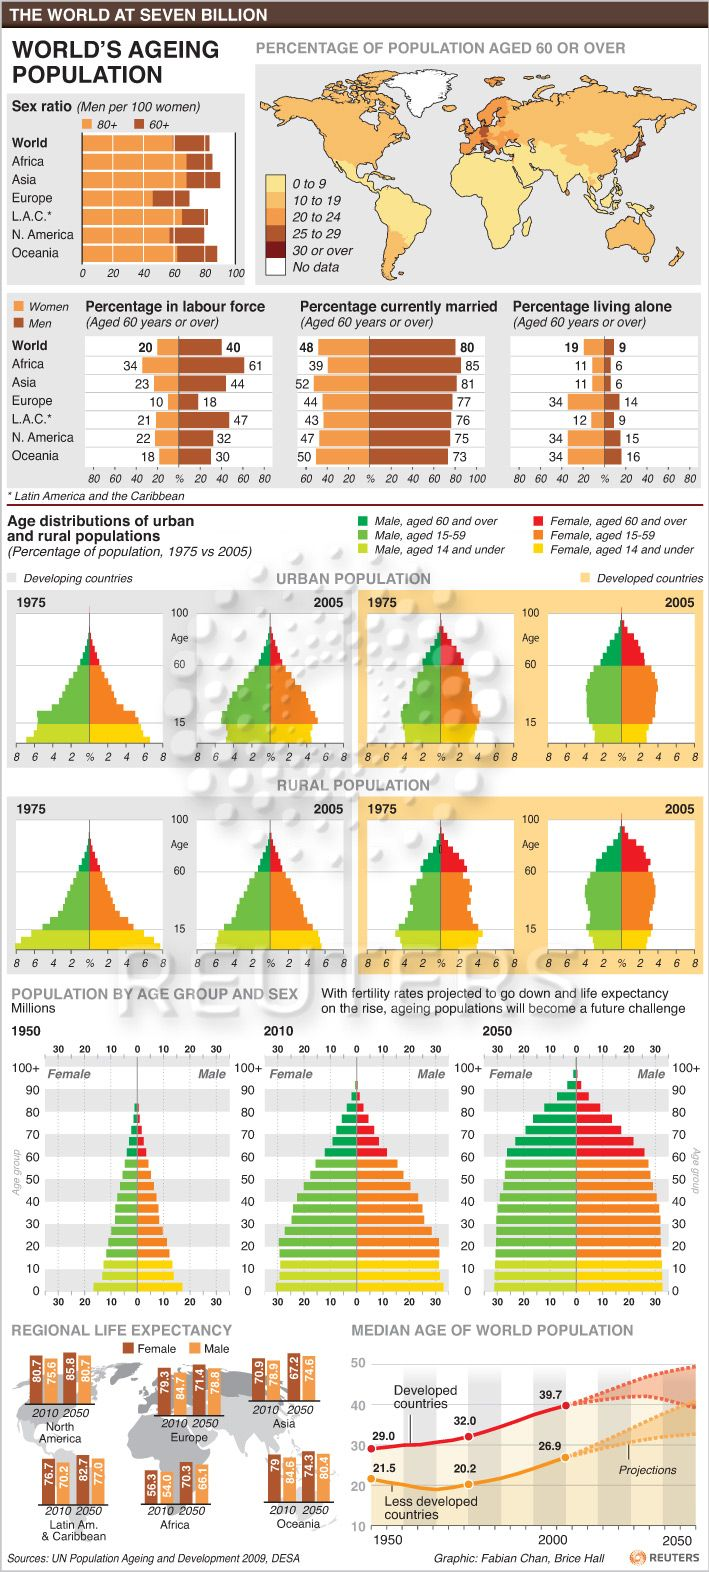 The World's Ageing Population